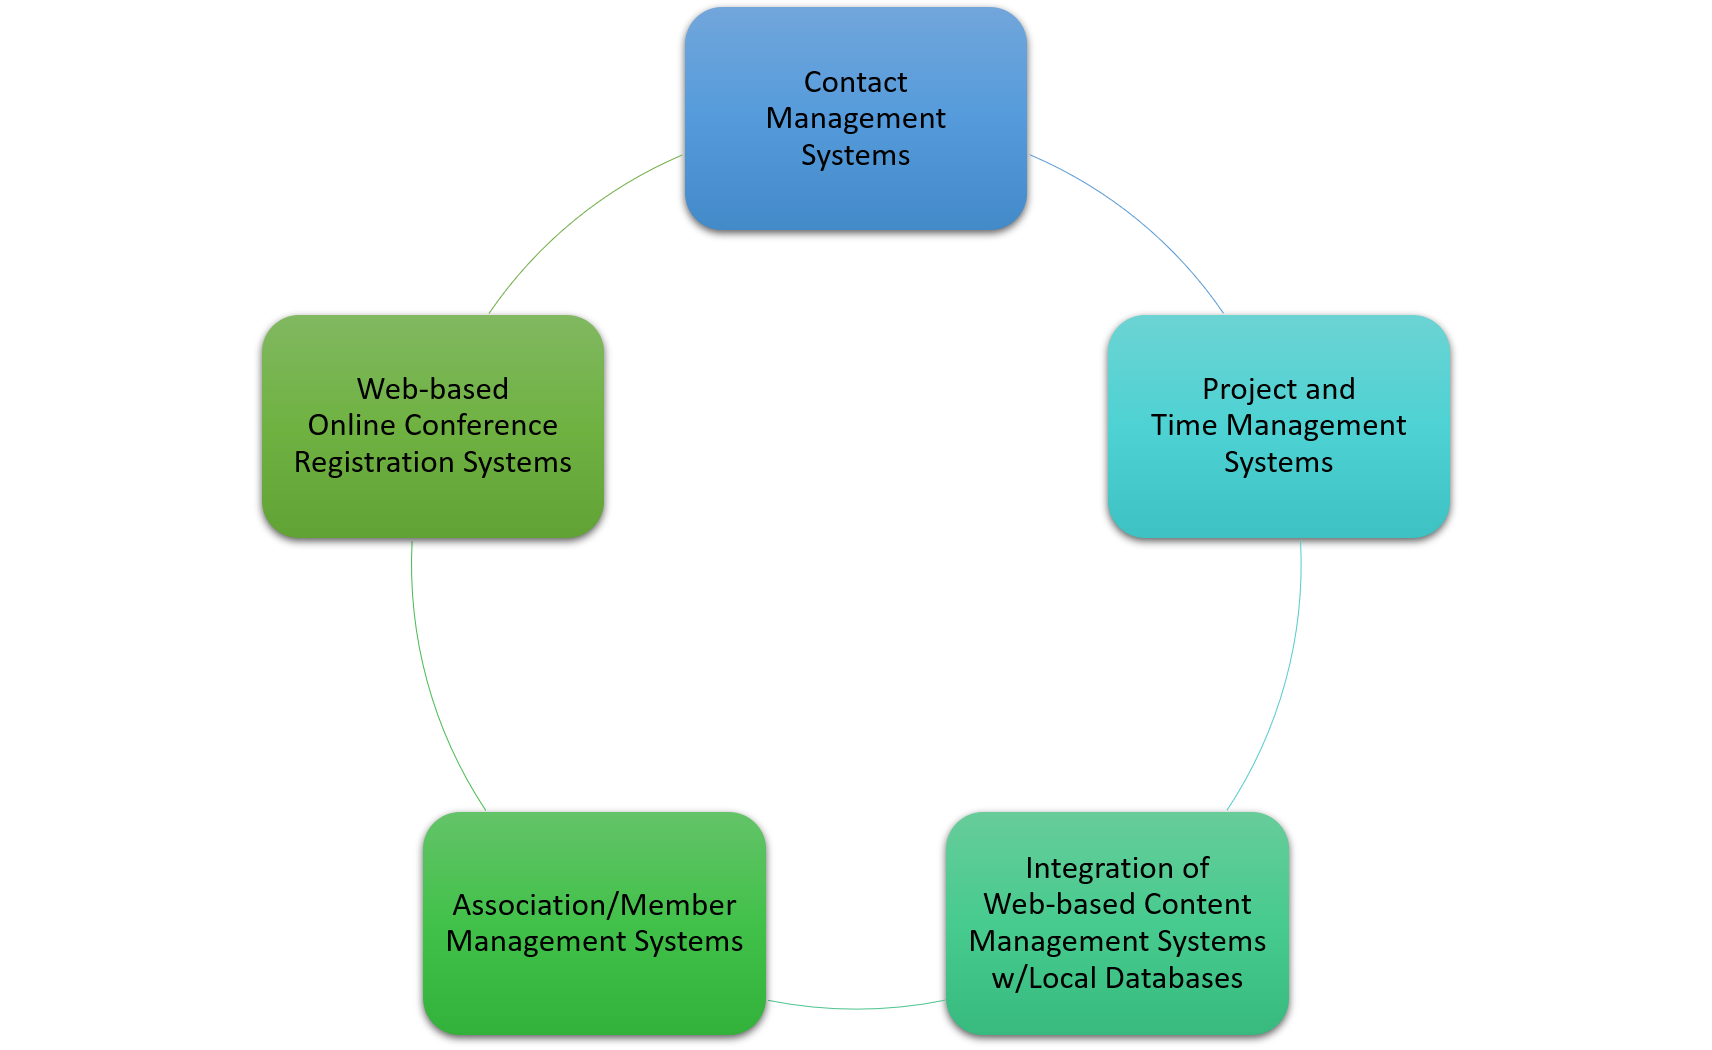 Database Projects include Contact Management Systems, Project and Time Management Systems, Integration of Web-based Content Management Systems w/Local Databases, Association/Member Management Systems and Web-based Online Conference Registration Systems